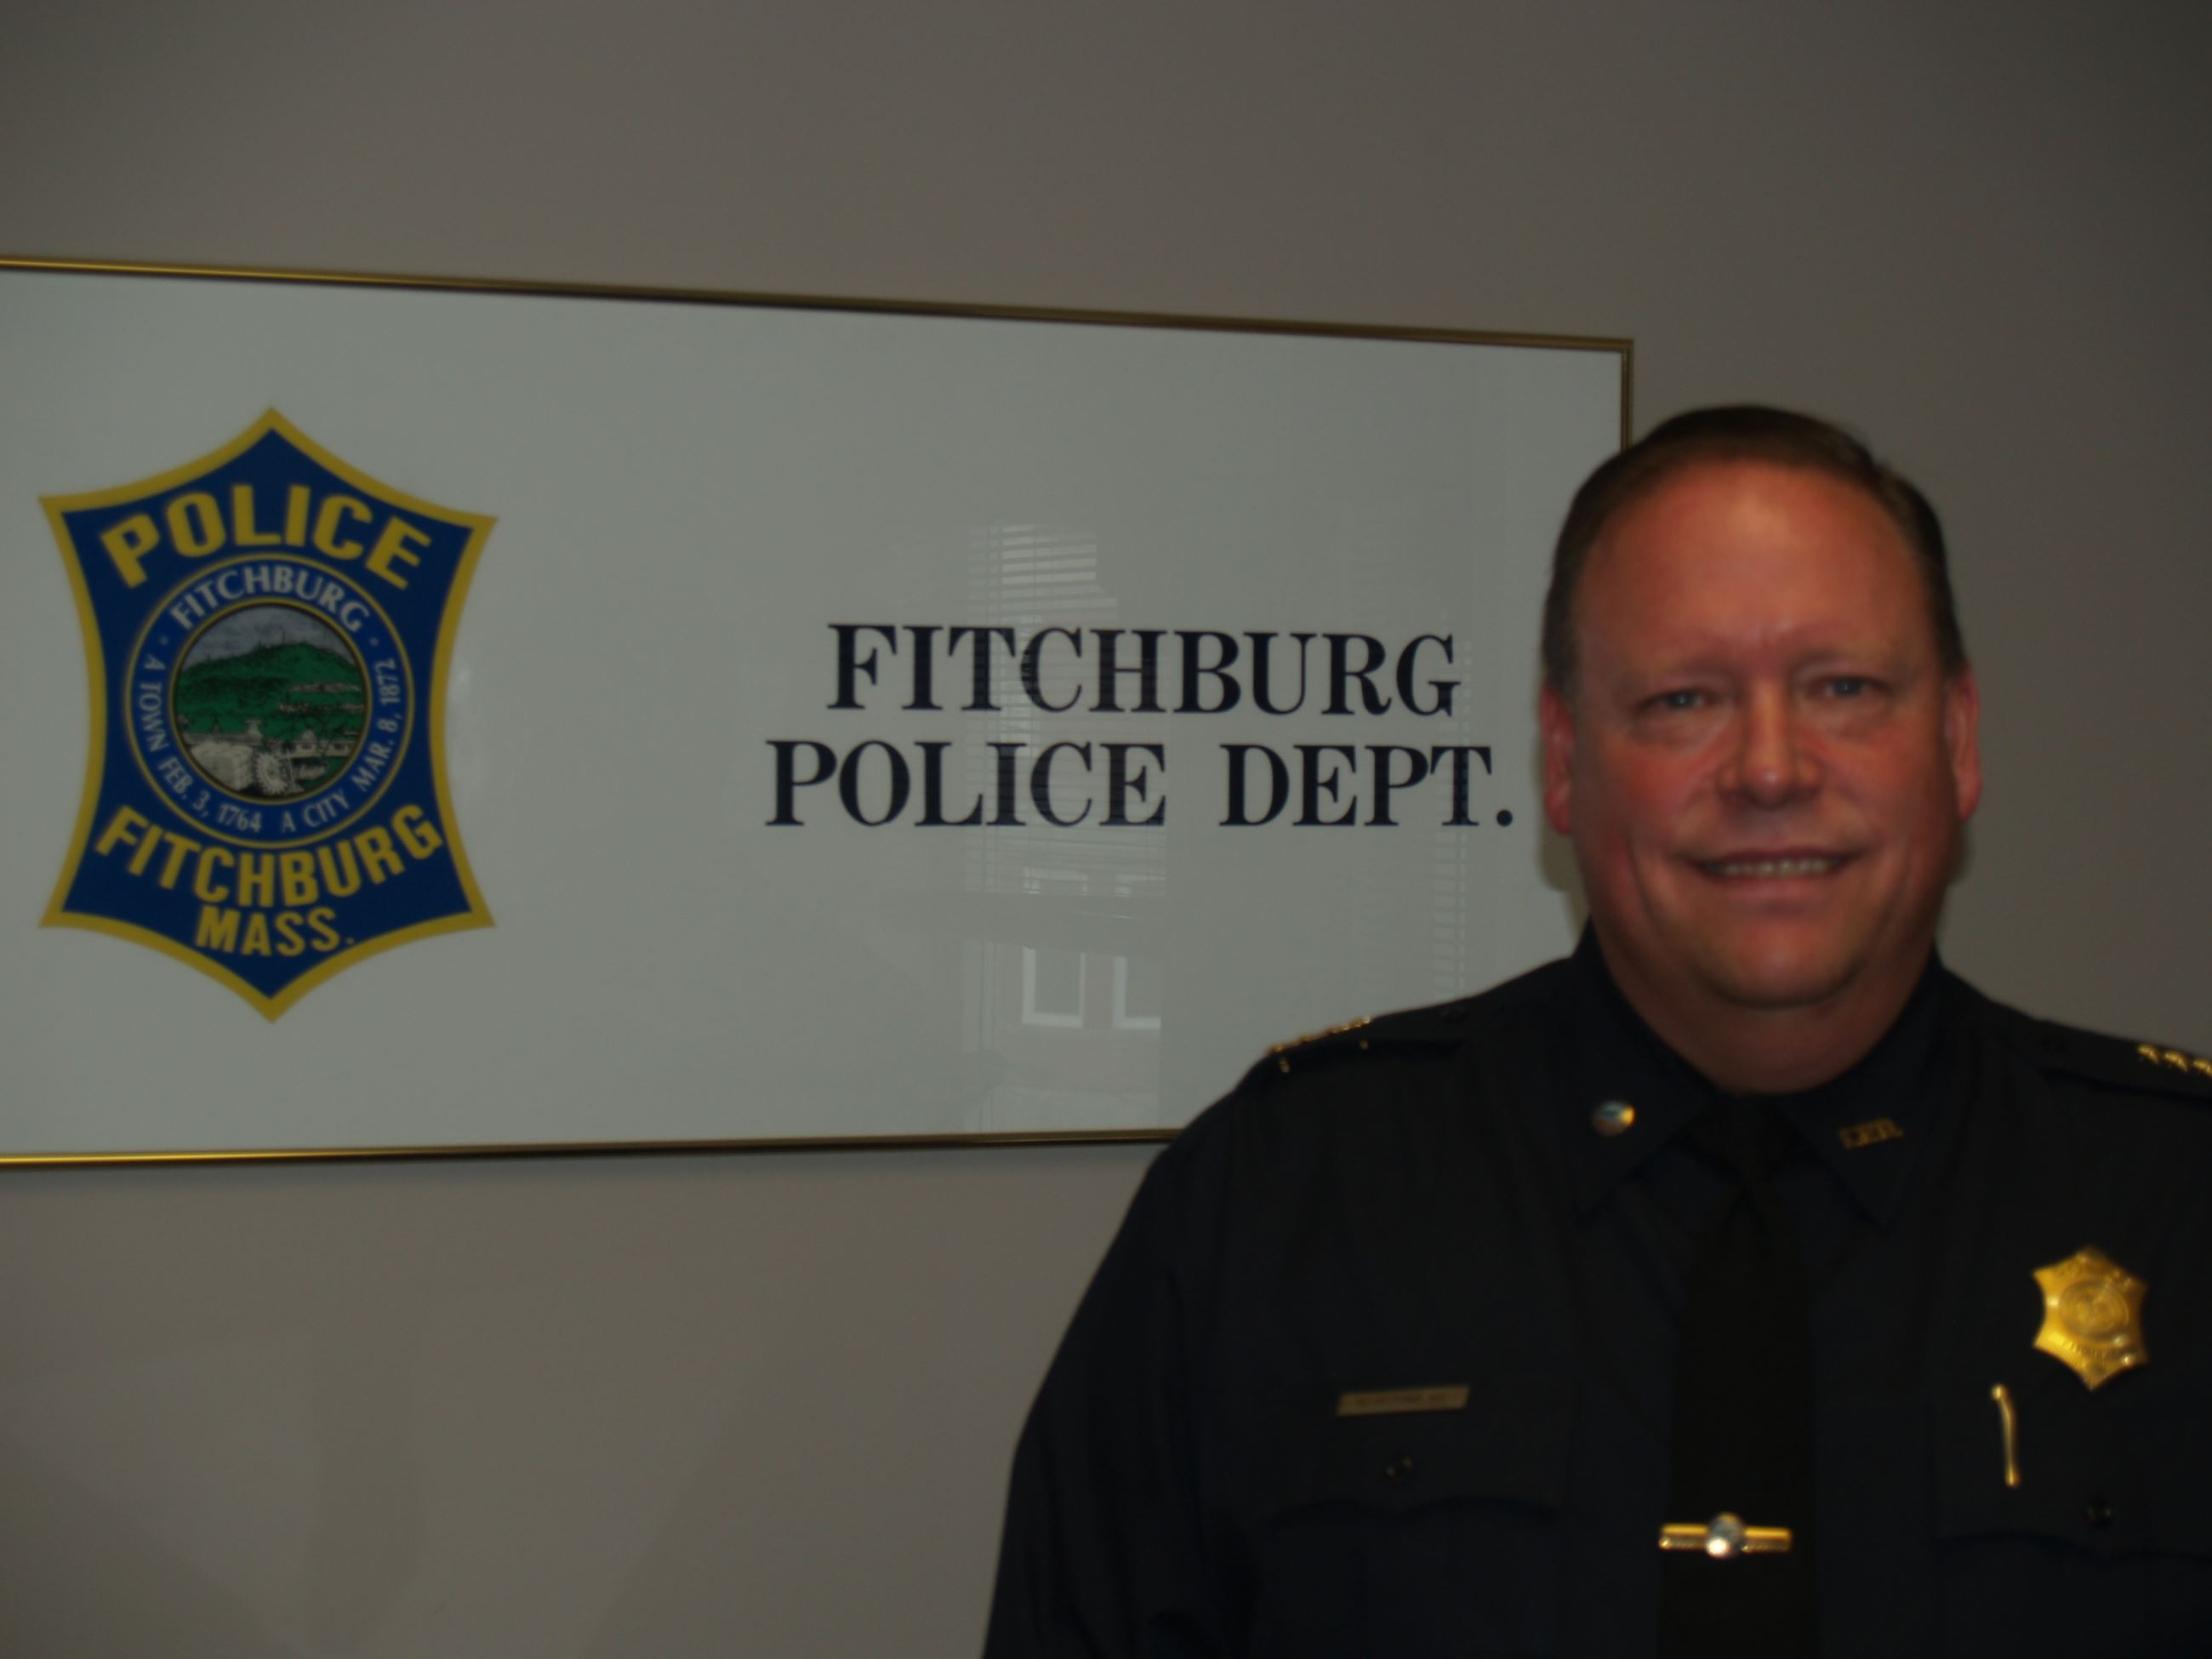 Police Department | Fitchburg, MA